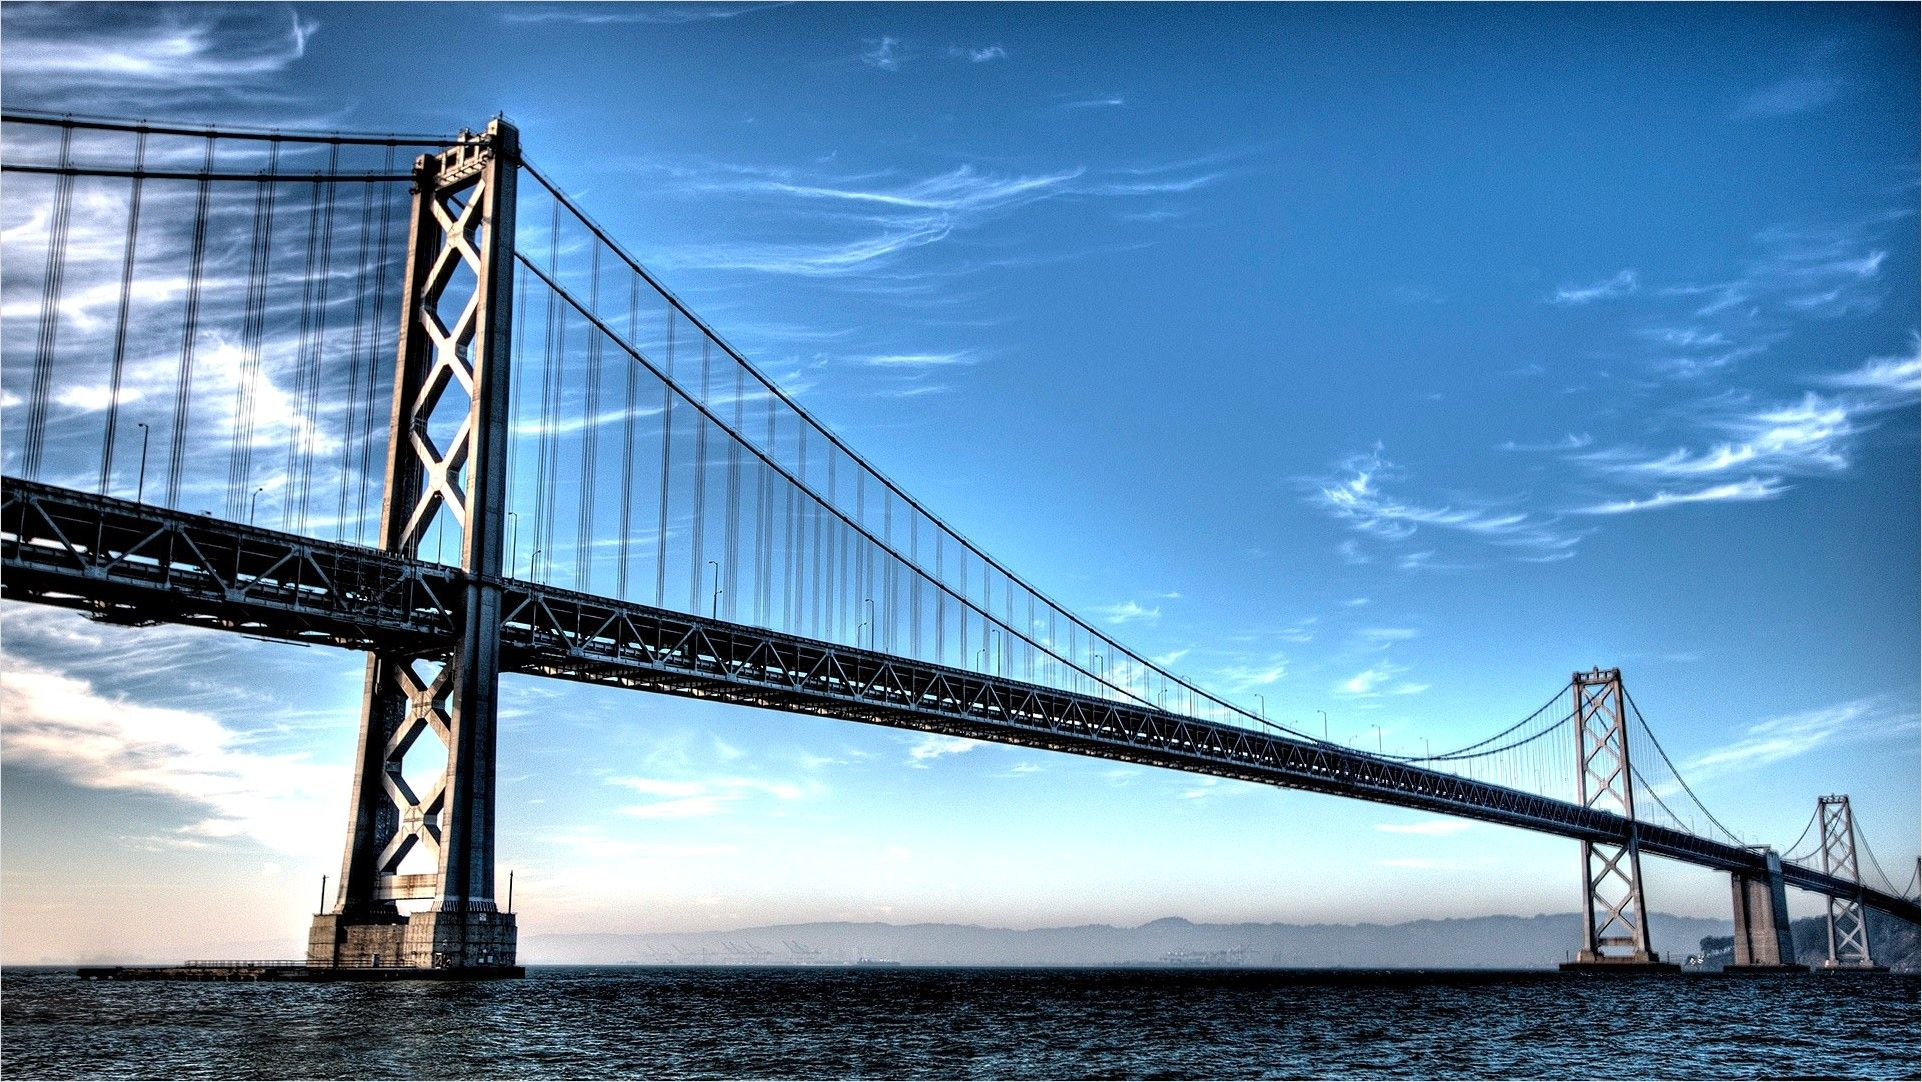 4k Structural Engineering Wallpapers In 2020 Bay Bridge San Francisco Bridge Wallpaper Bay Bridge